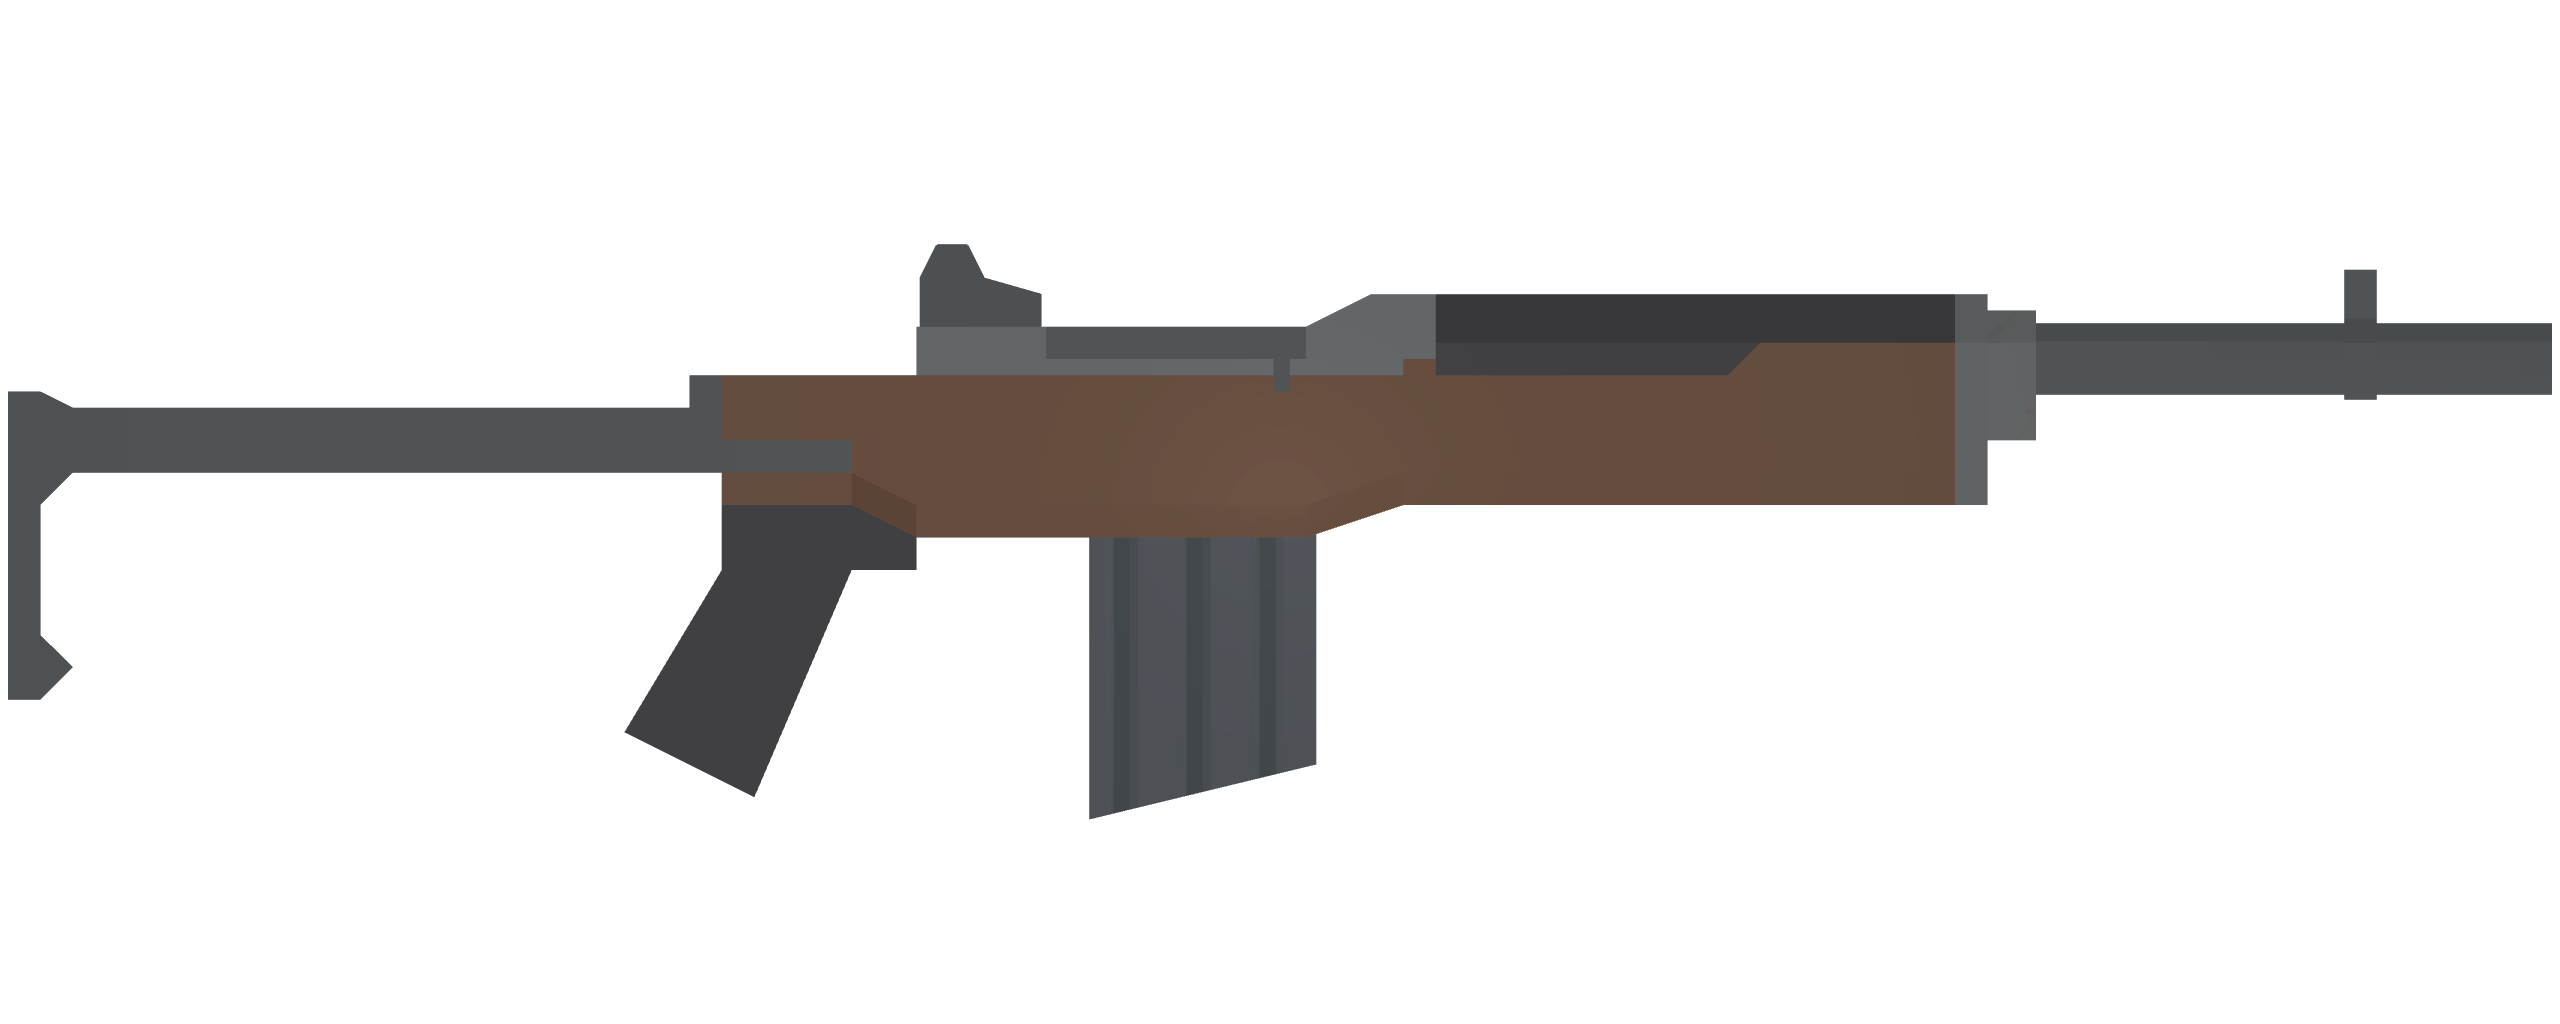 Unturned - All Weapons ID's for Uncreated Warfare Mods - Neutral Weapons - 37EEC91